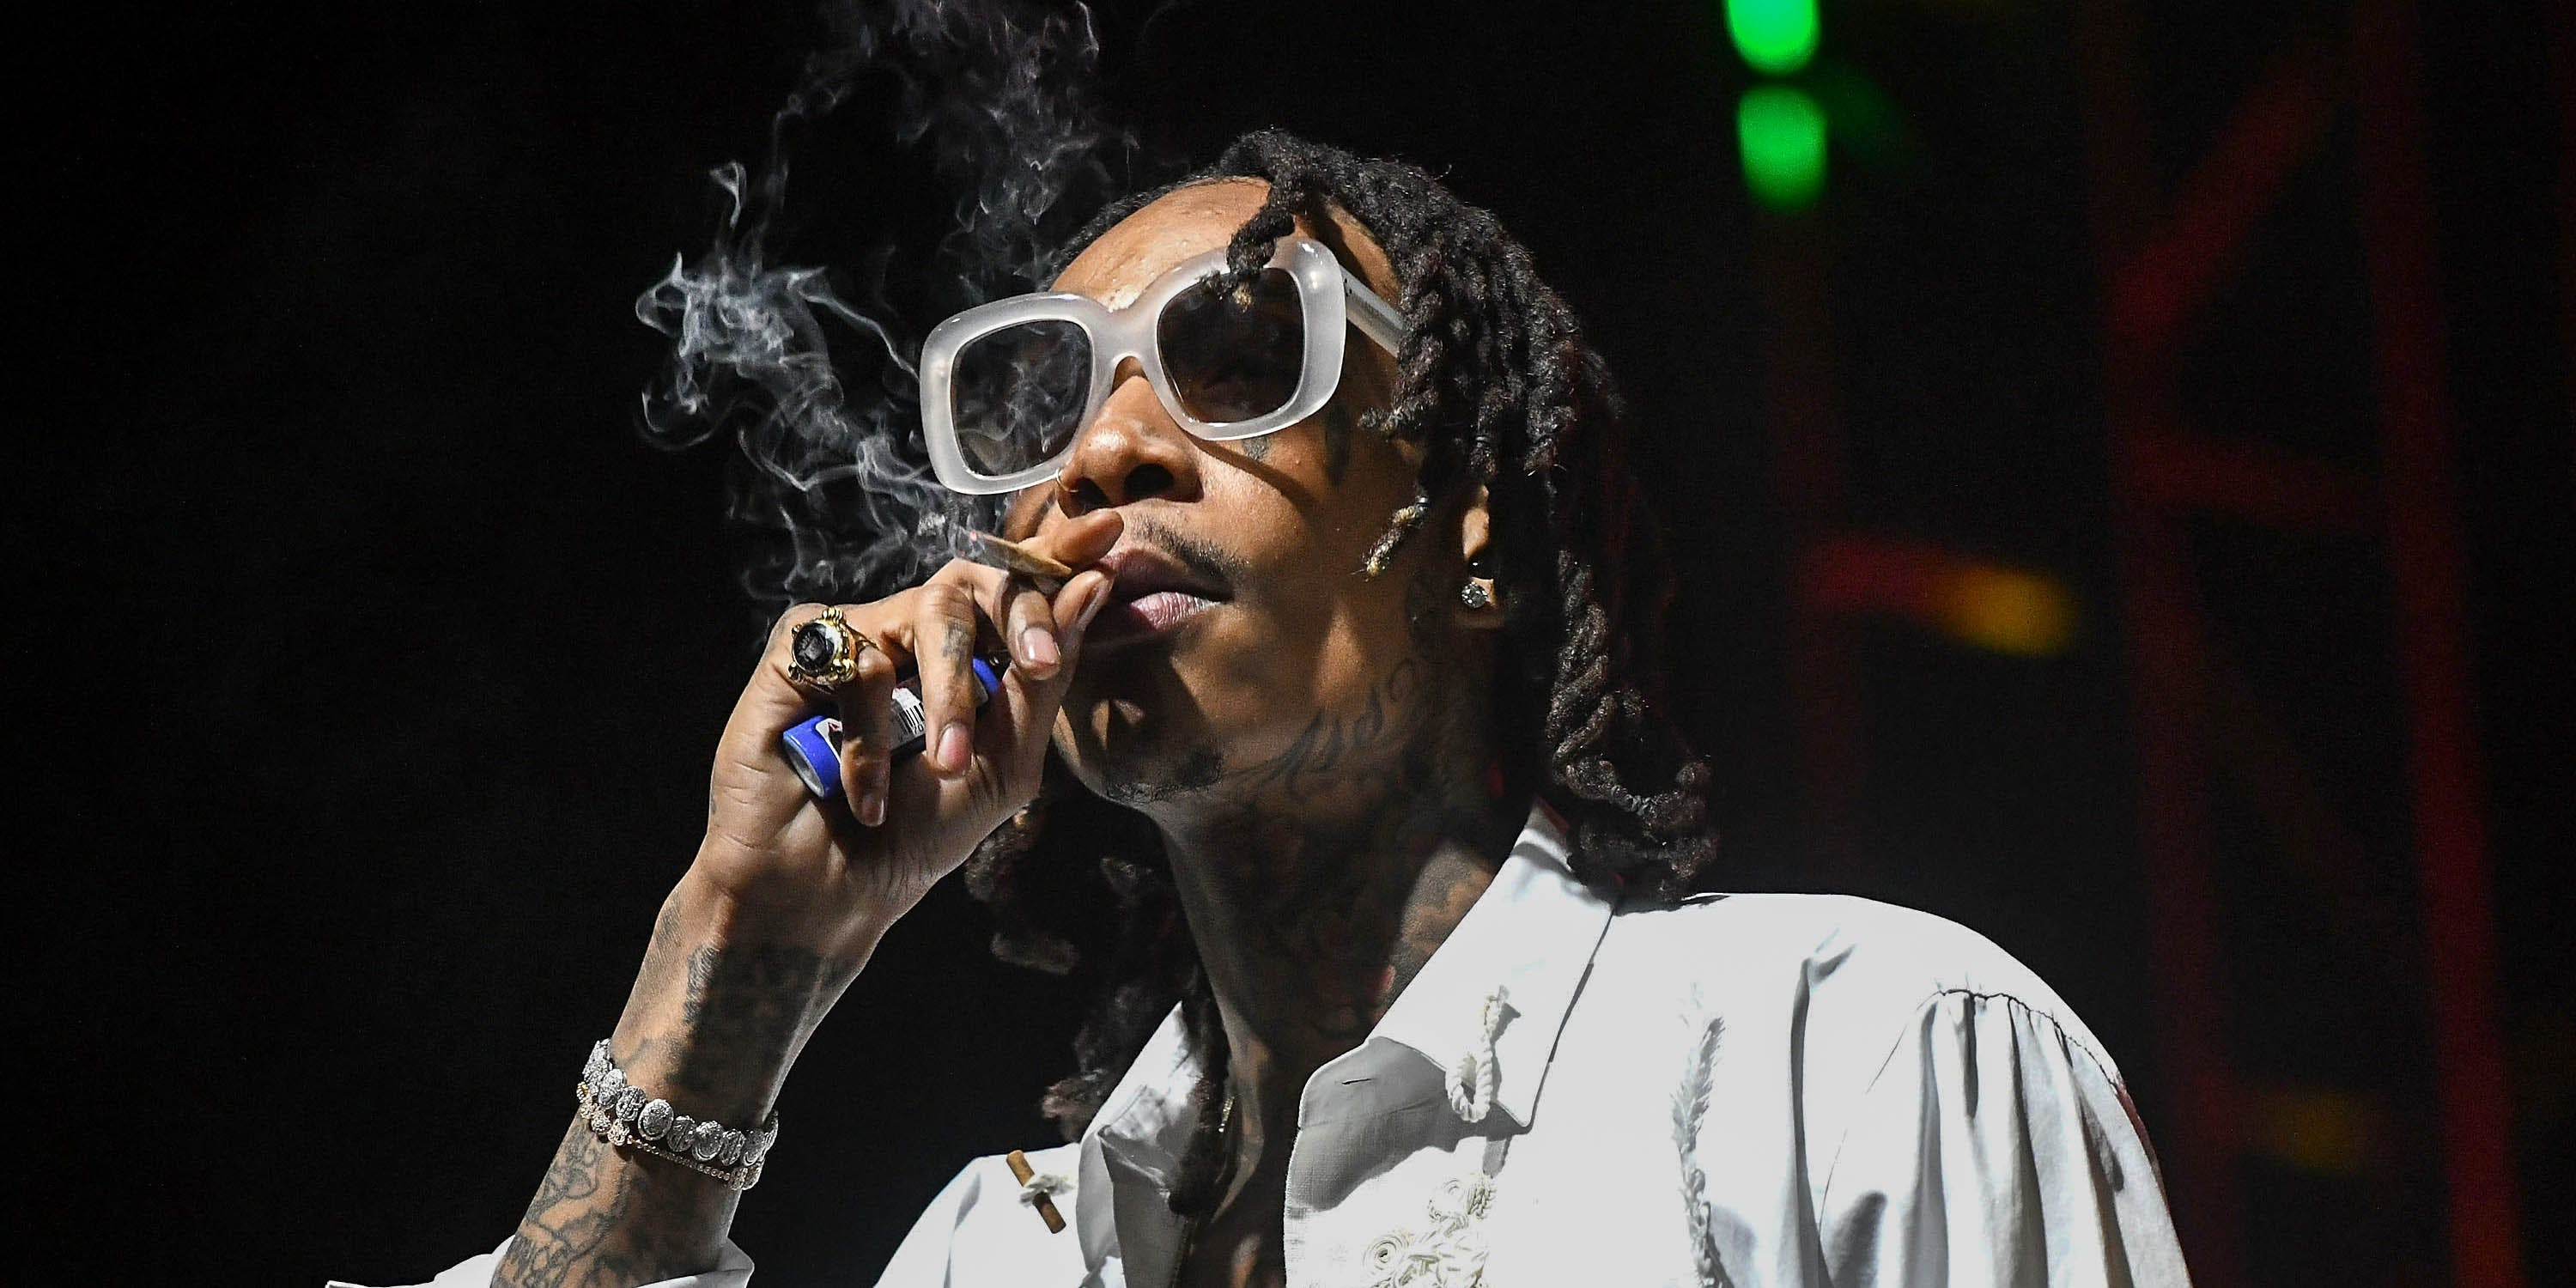 Wiz Khalifa dropped his weed tips four years ago, but do they still ring true?